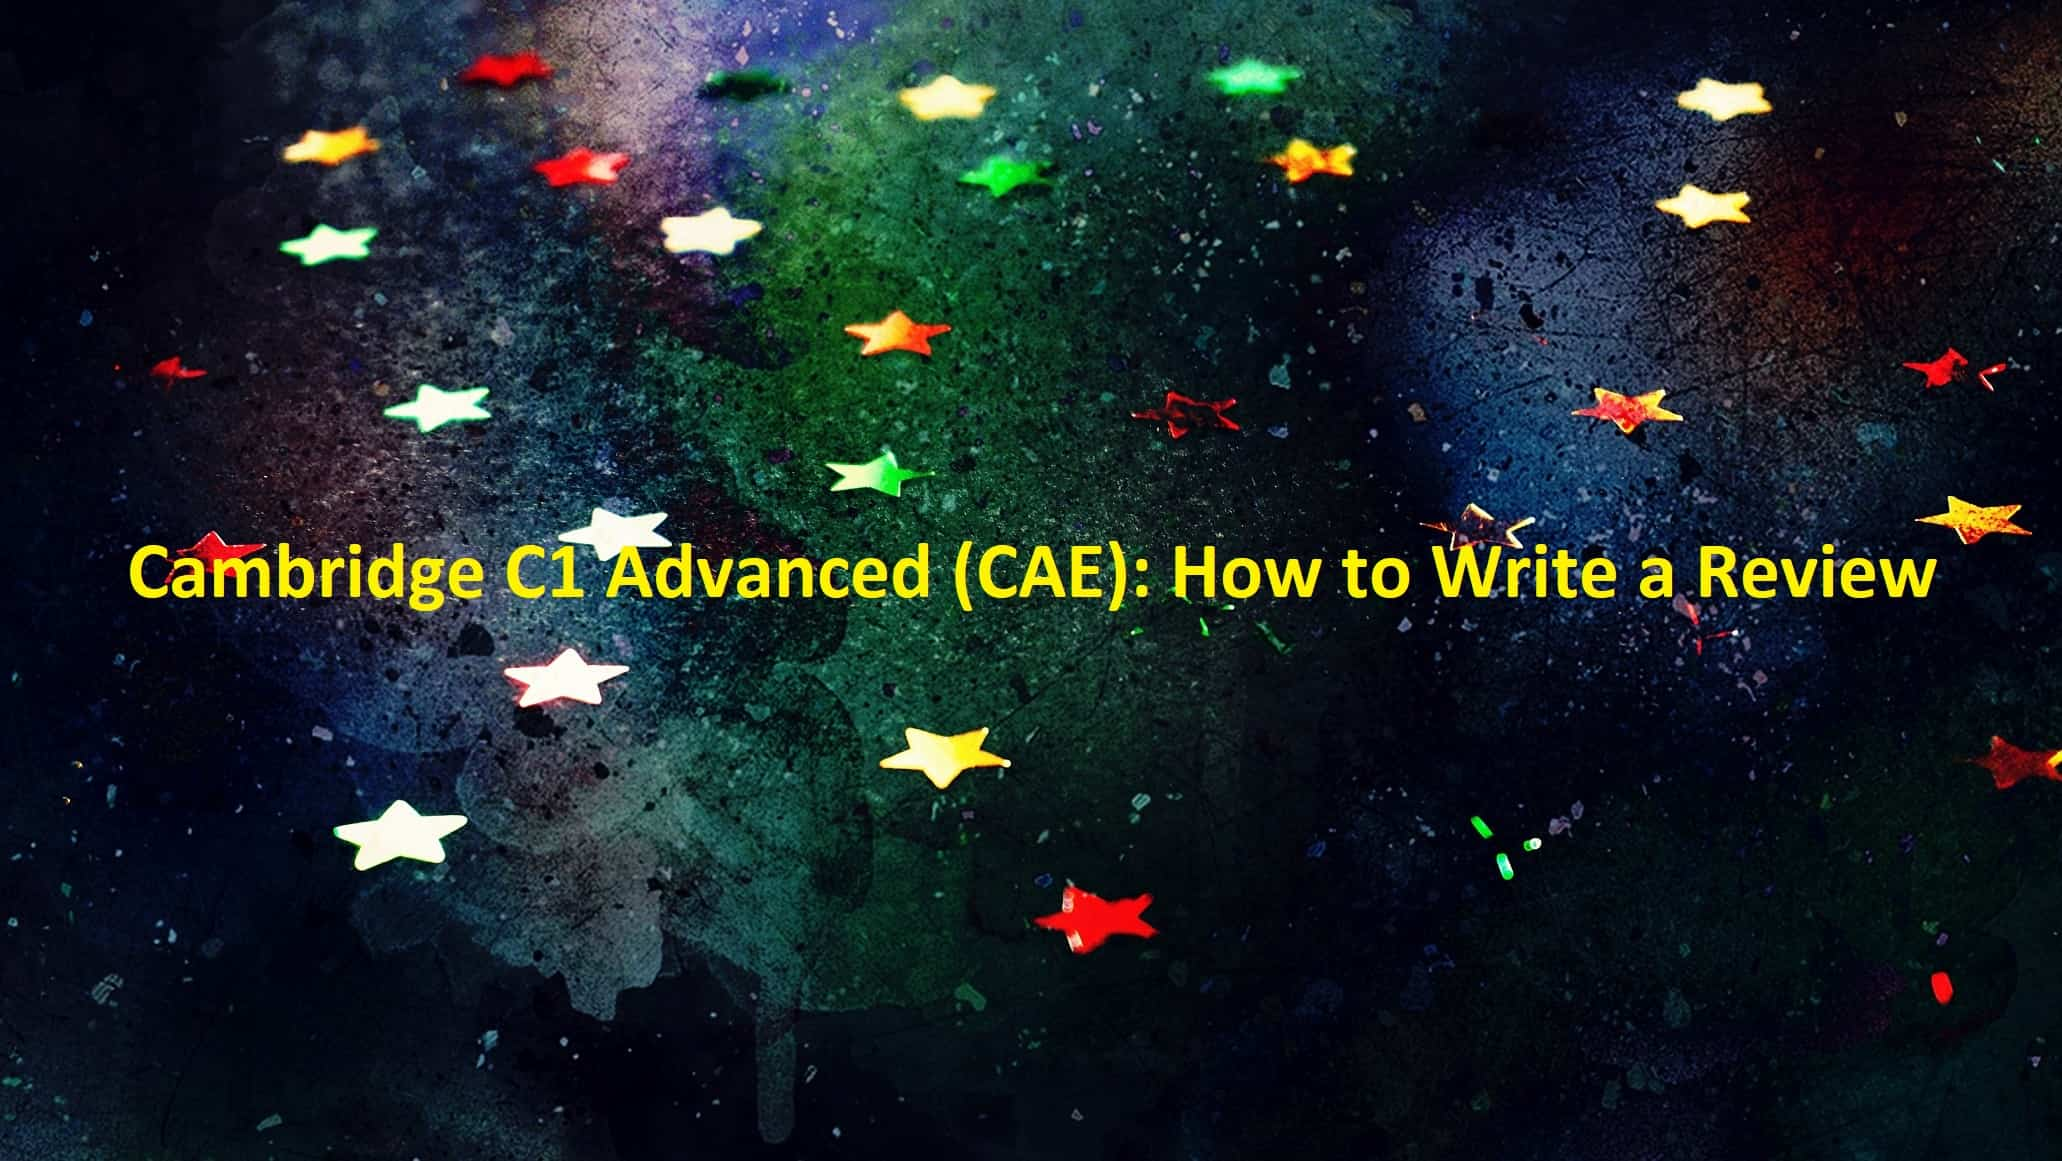 C1 Advanced - How to Write a Review